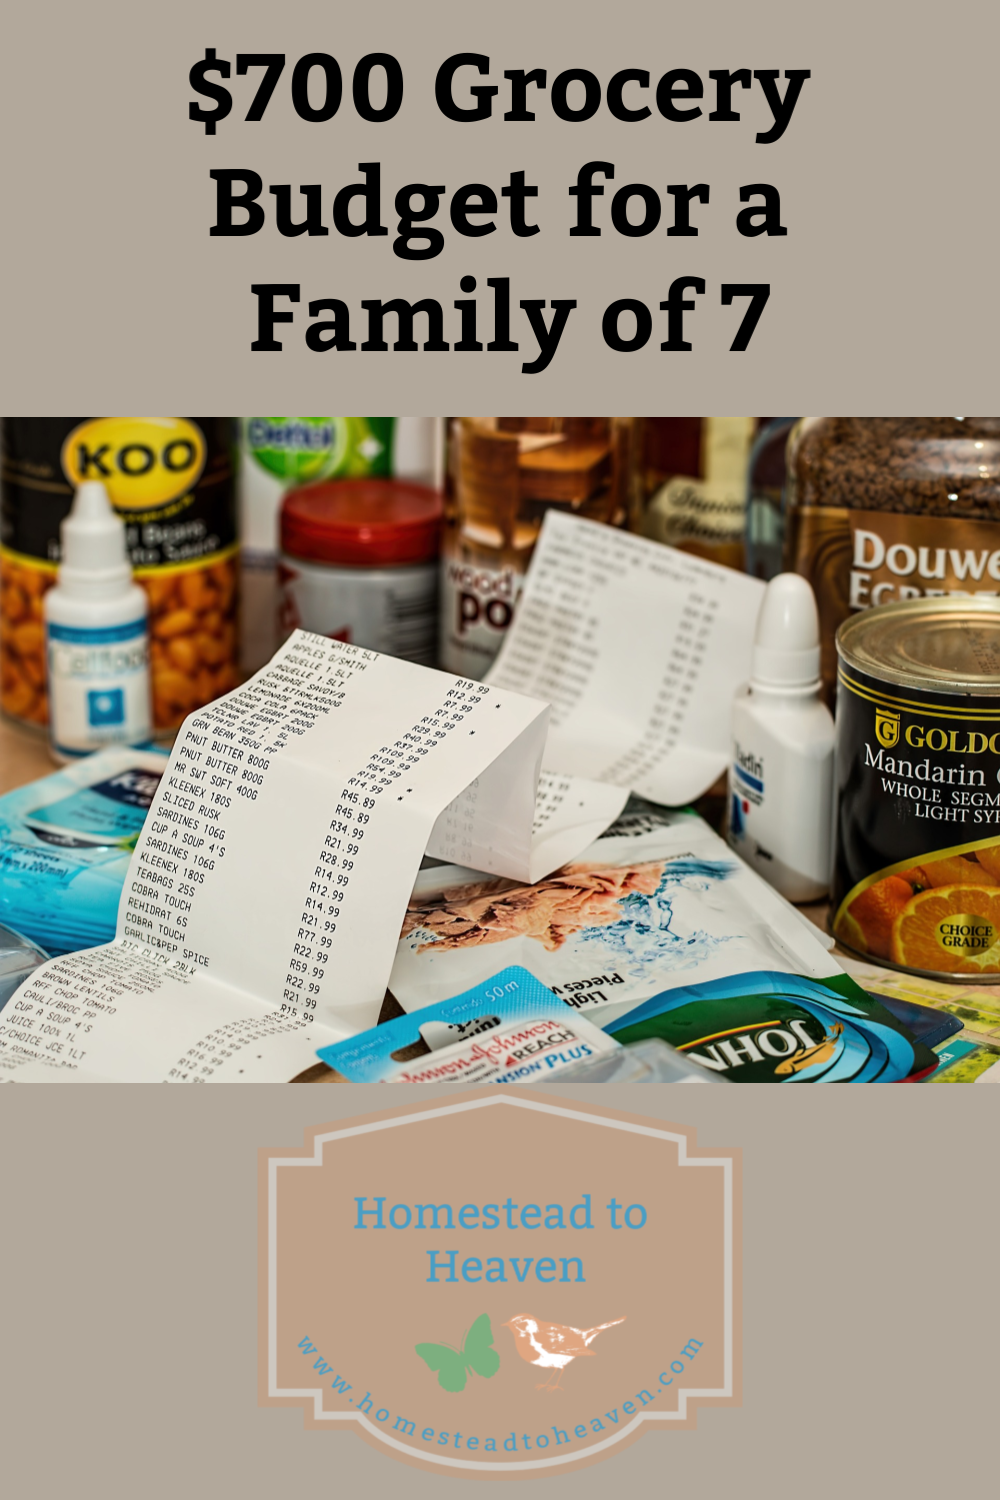 700 Grocery Budget for a Family of 7 Homemade soft